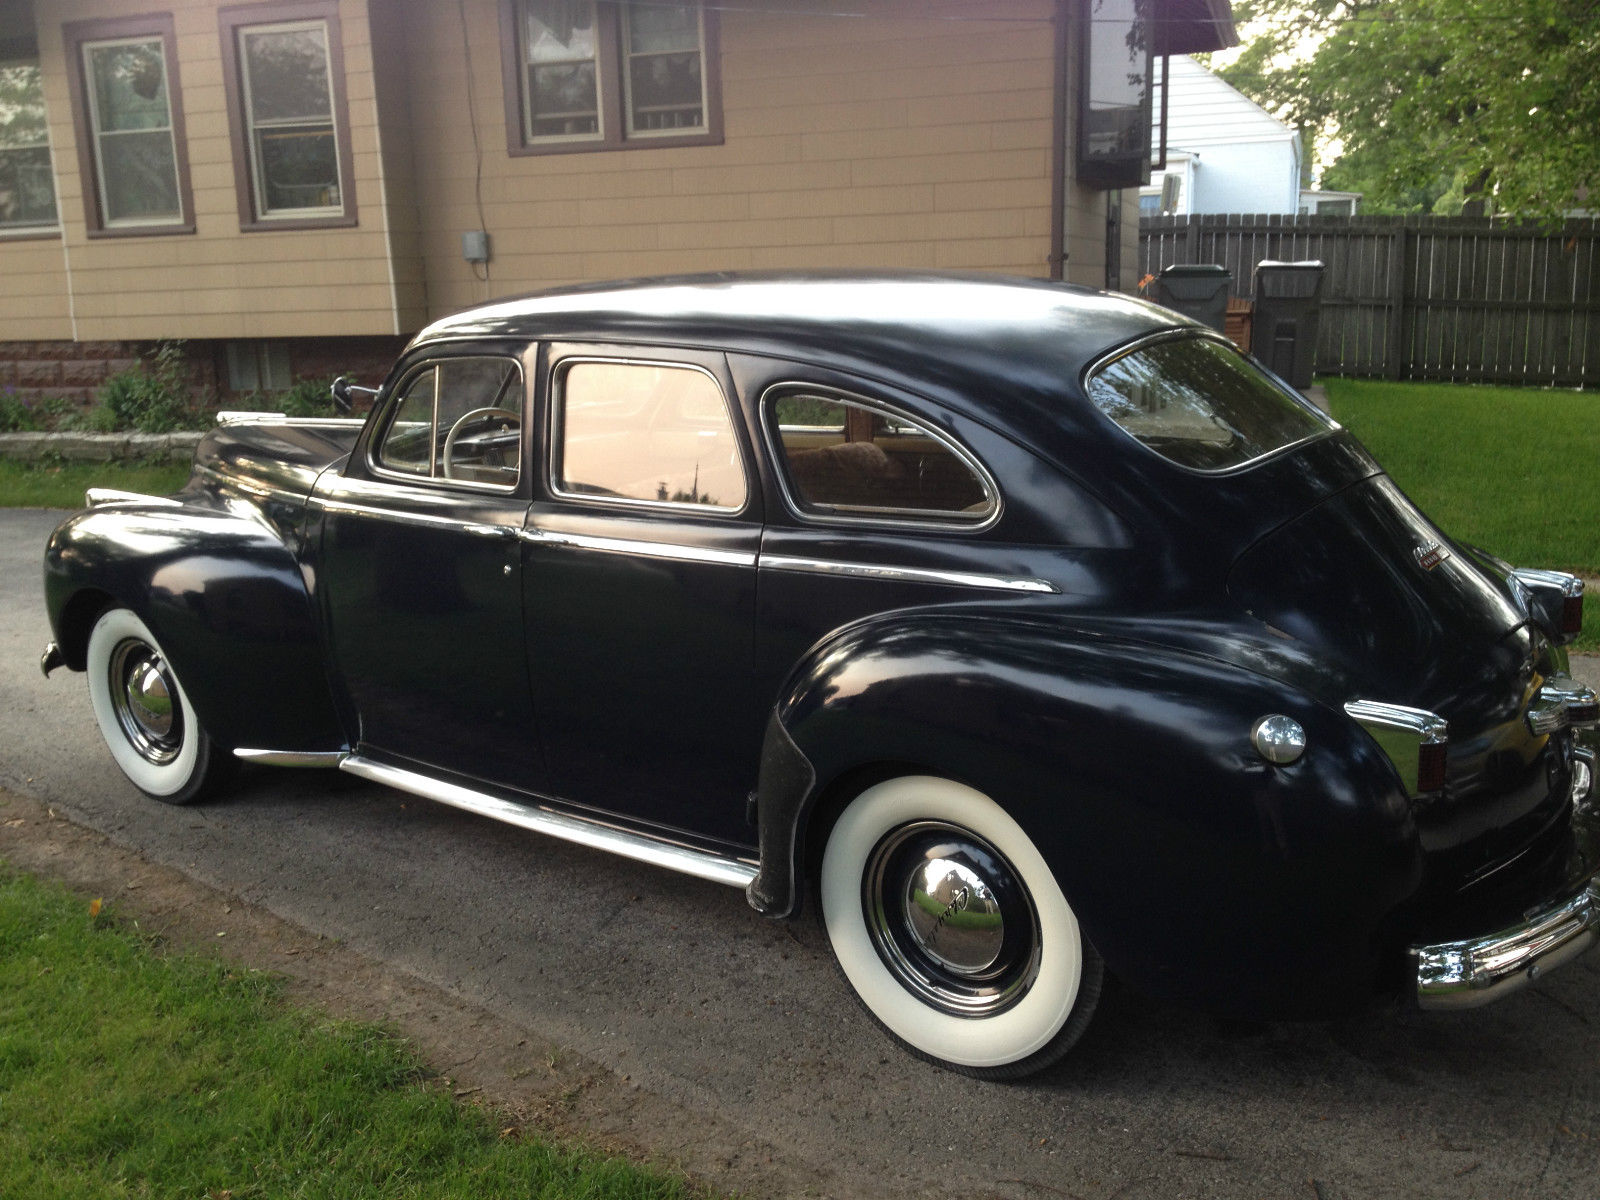 Chrysler royal pictures posters news and videos on for 1941 chrysler royal 3 window coupe